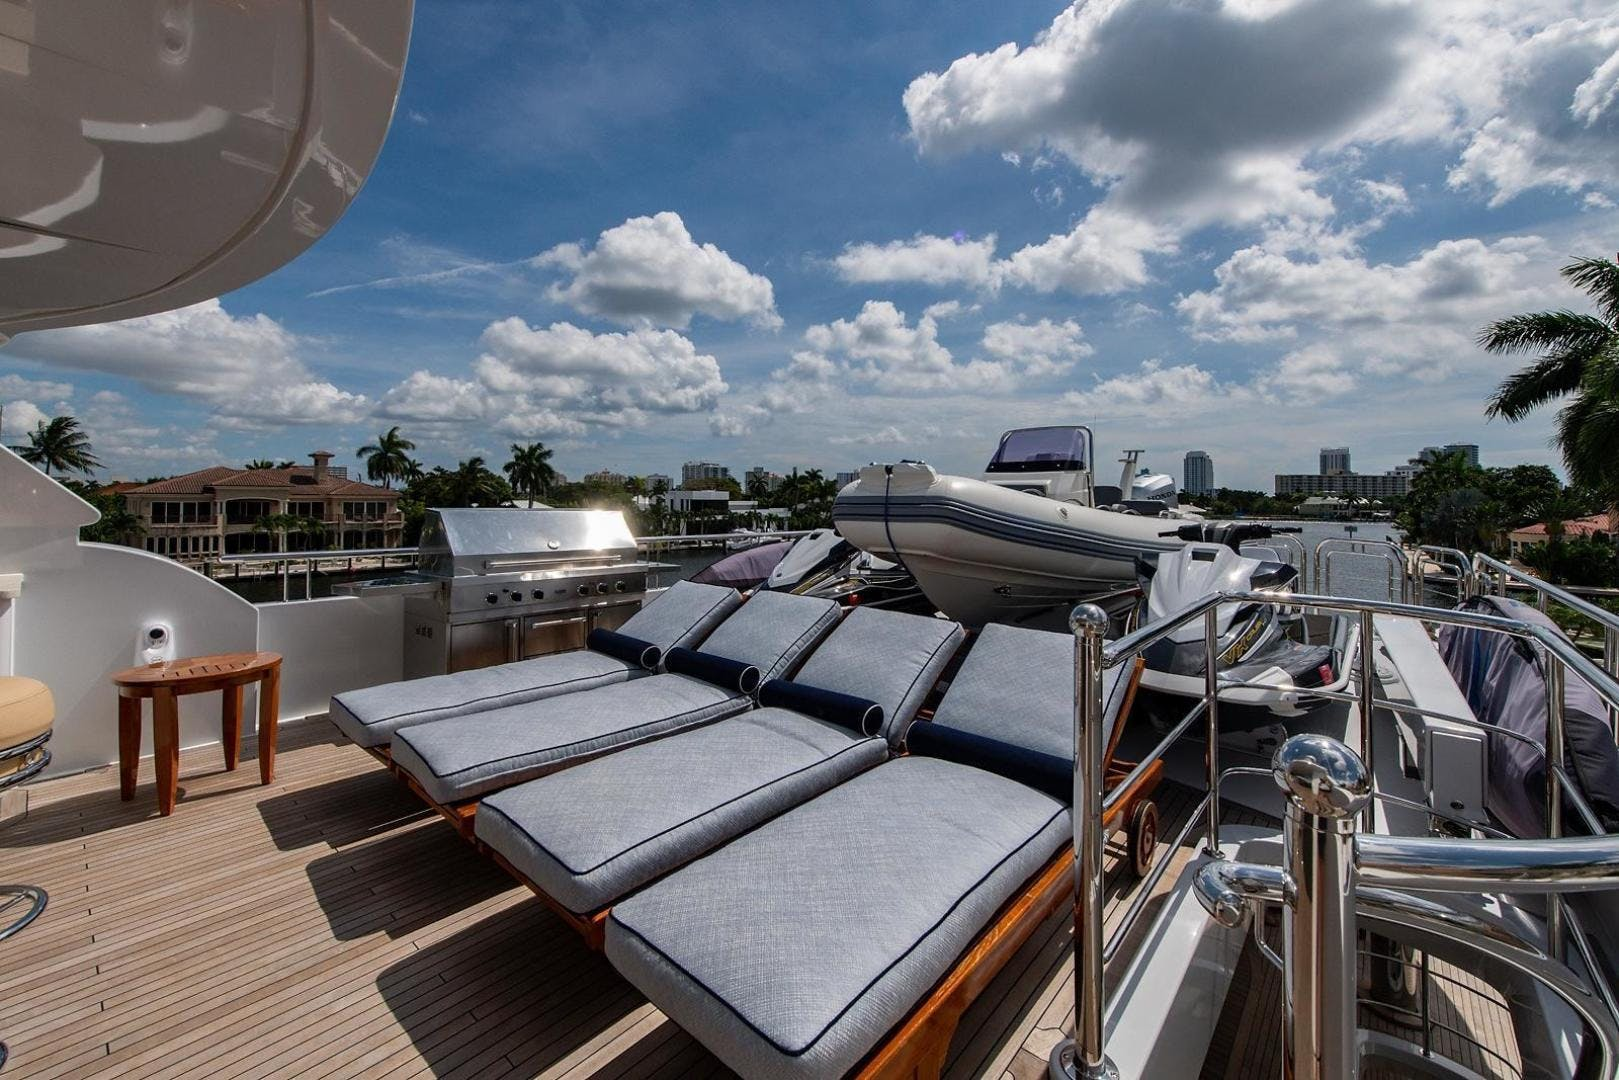 2013 Richmond Yachts 150' Tri-deck Motor Yacht Revive | Picture 8 of 164